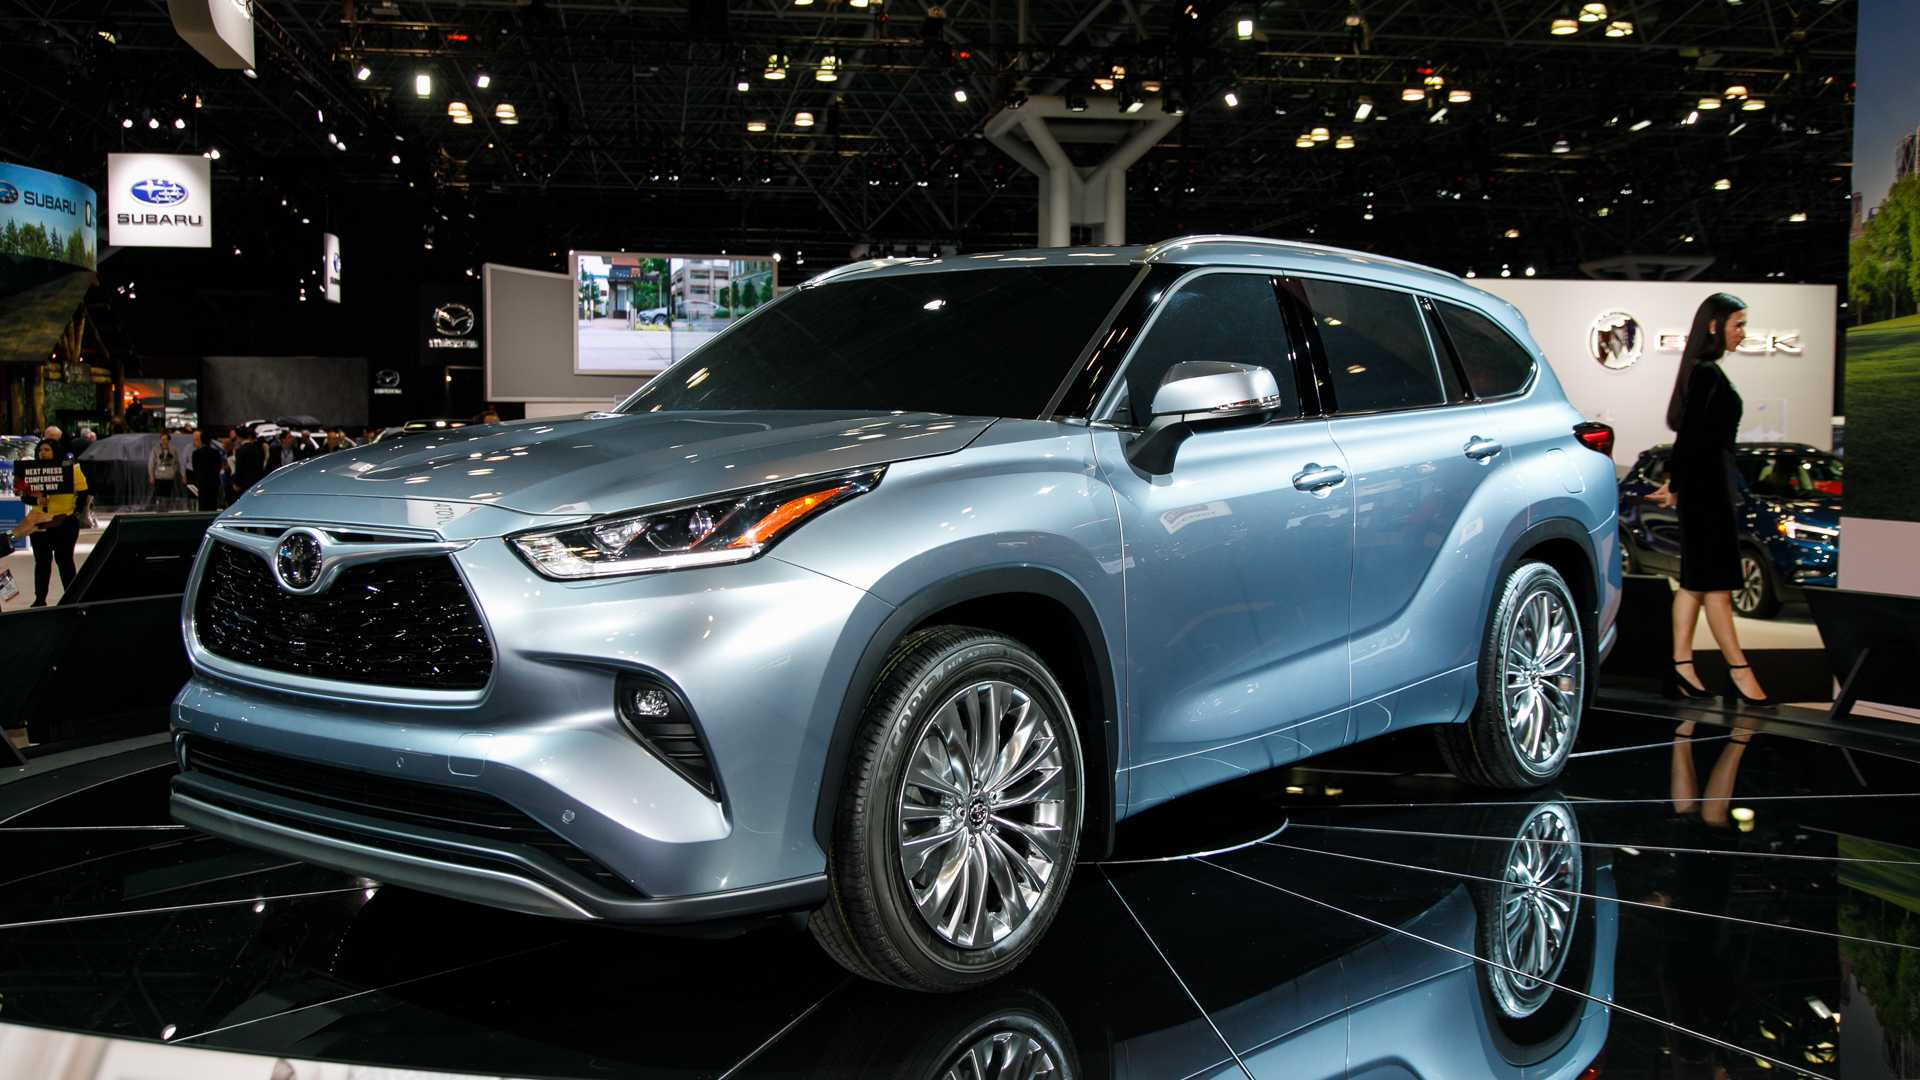 61 Gallery of Toyota Kluger New 2020 Style for Toyota Kluger New 2020